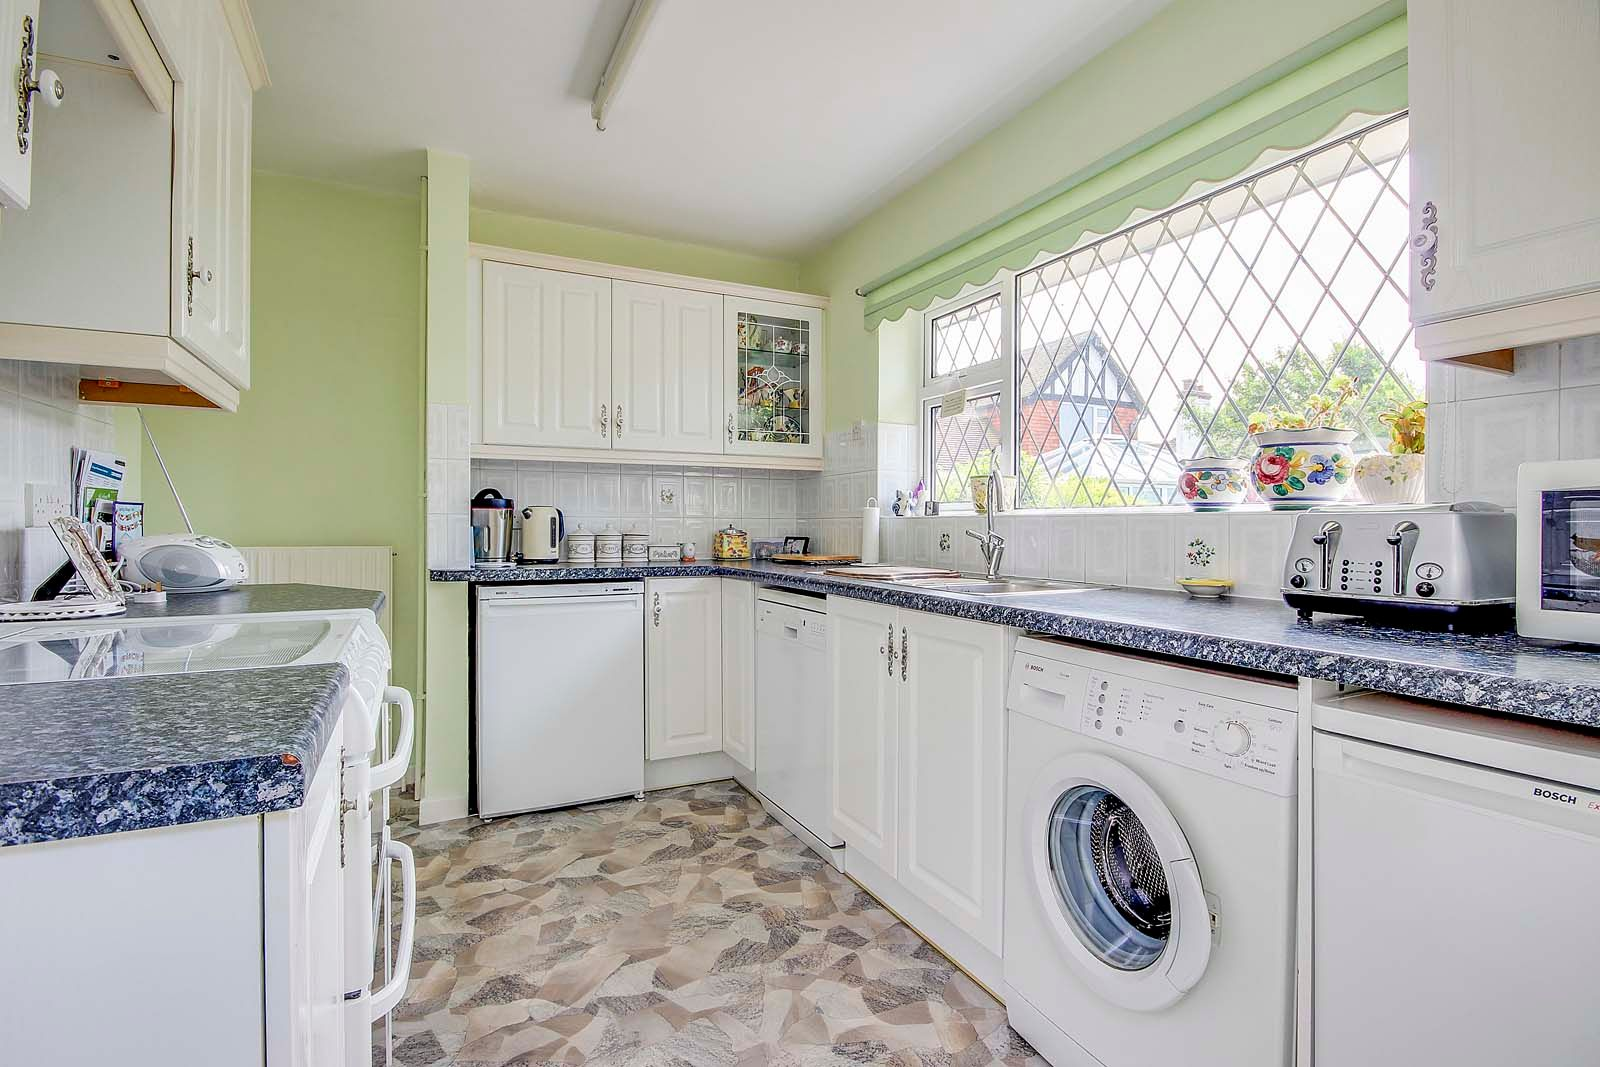 3 bed House for sale in Rustington - Kitchen (Property Image 6)